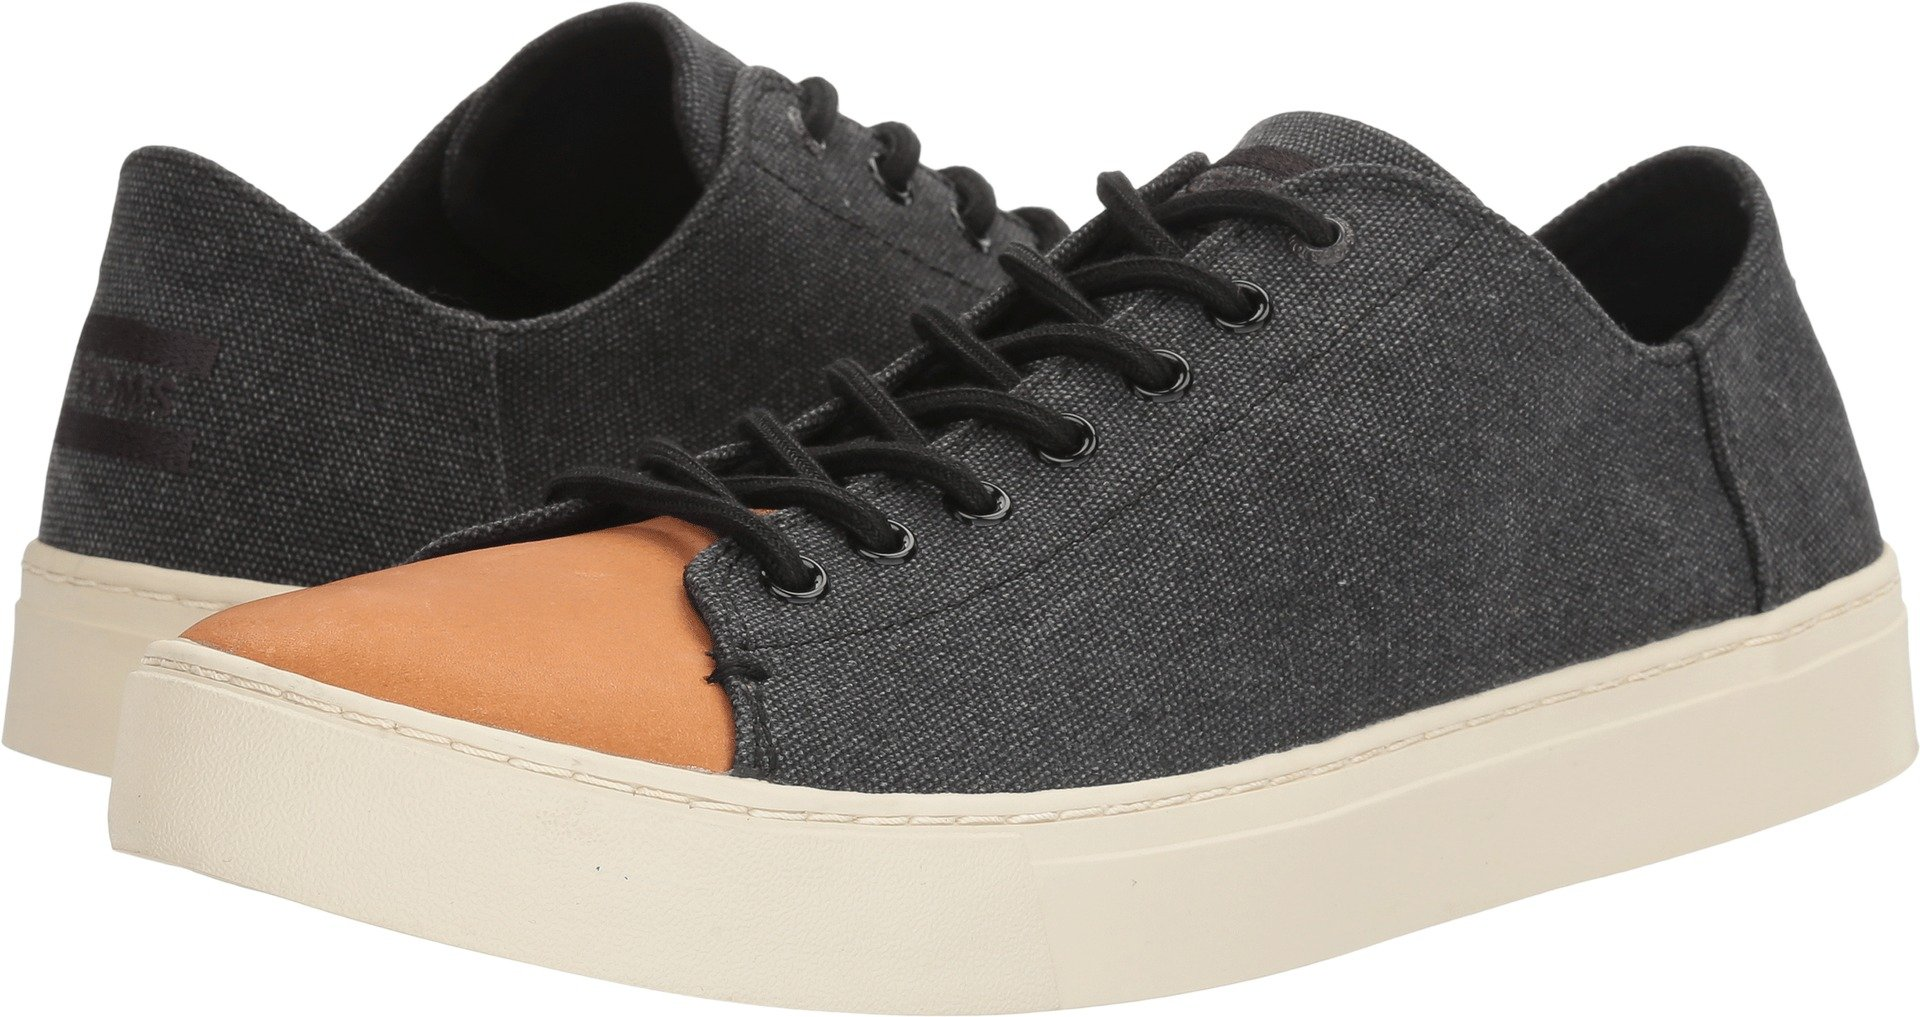 fa1ecc38ff8 Galleon - TOMS Men s Lenox Sneaker Black Washed Canvas Leather 10 D US D (M)